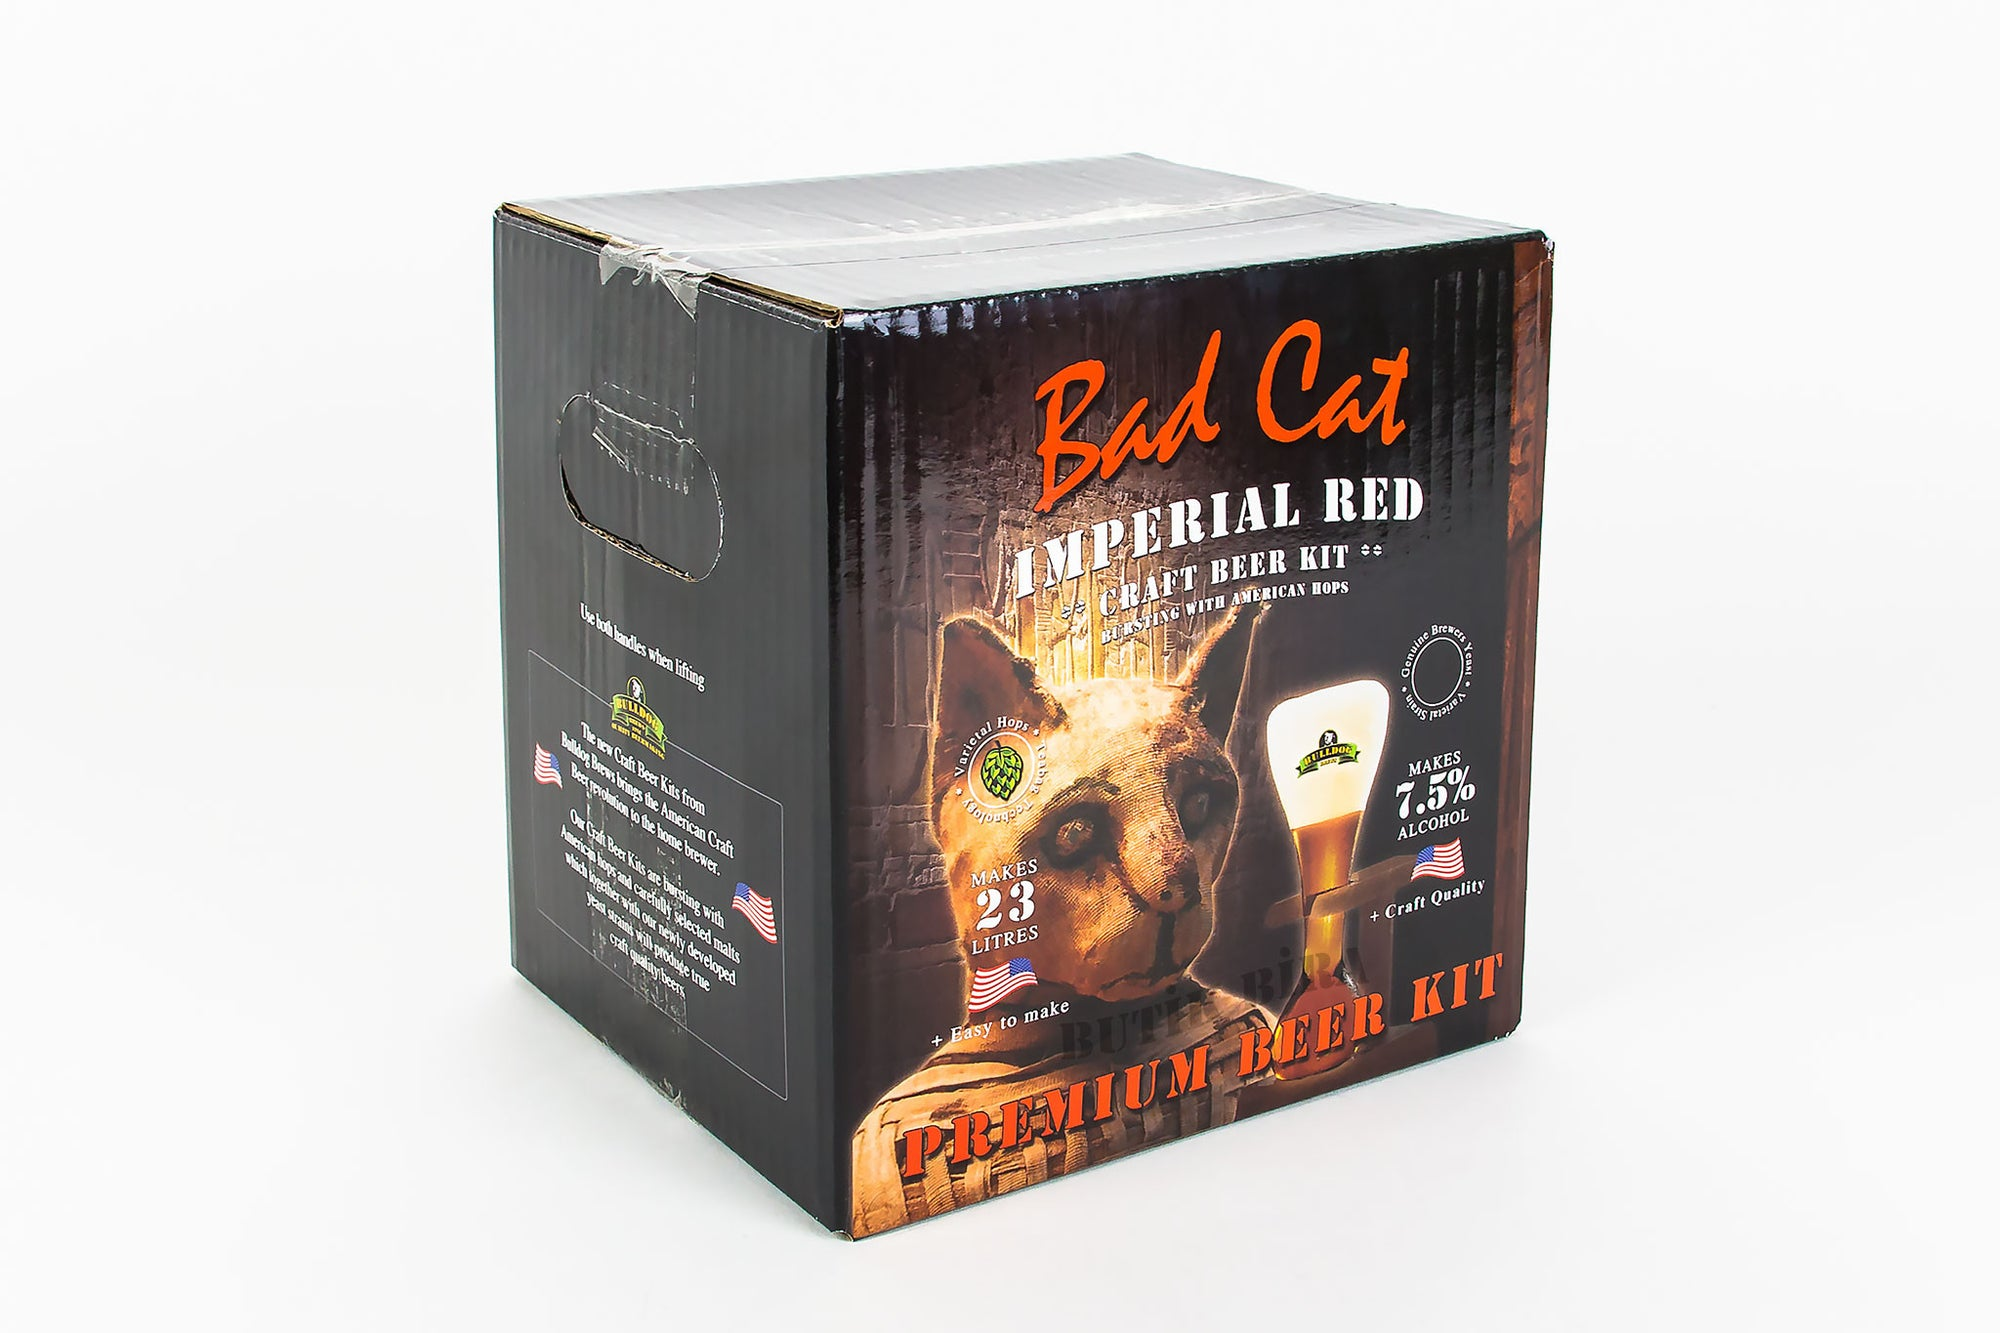 Bulldog Bad Cat Imperial Red Evde Bira Yapımı Kiti - Butik Bira